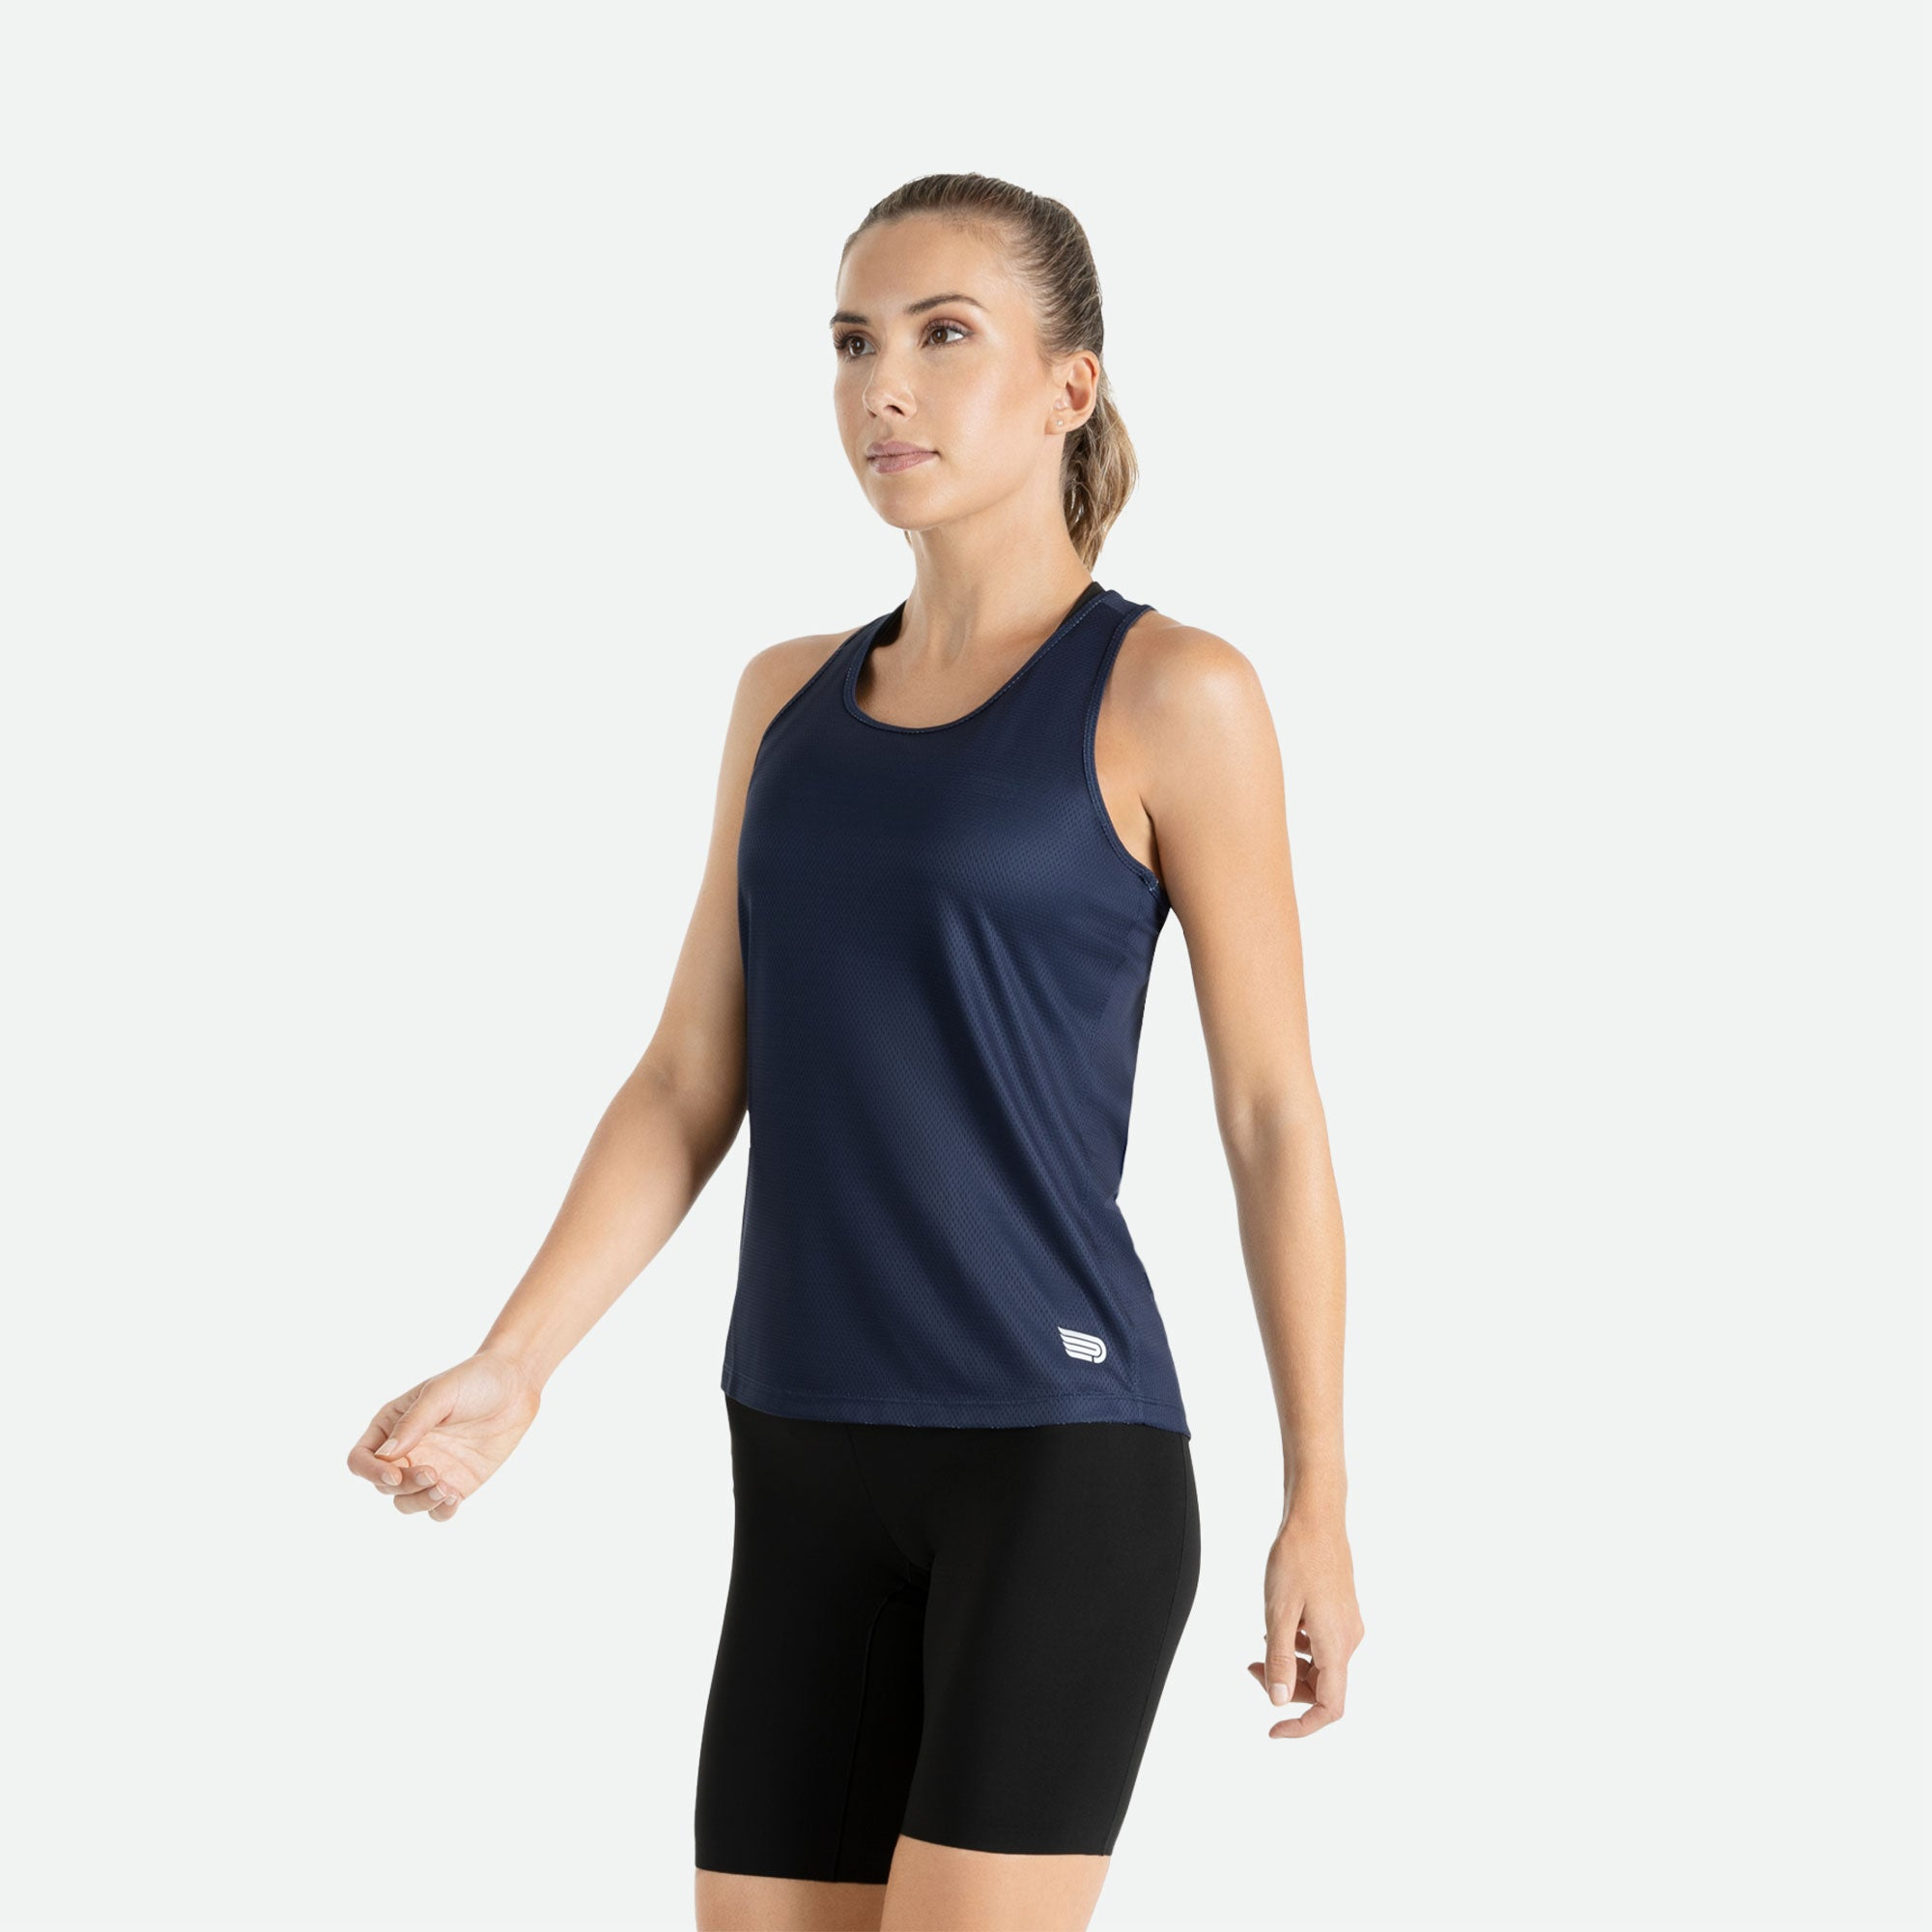 Our Pressio women's navy Hāpai razorback singlet features EcoTECH MF fabric which has dual filament recycled polyester yarns from Unifi for superior moisture control to keep you dry.